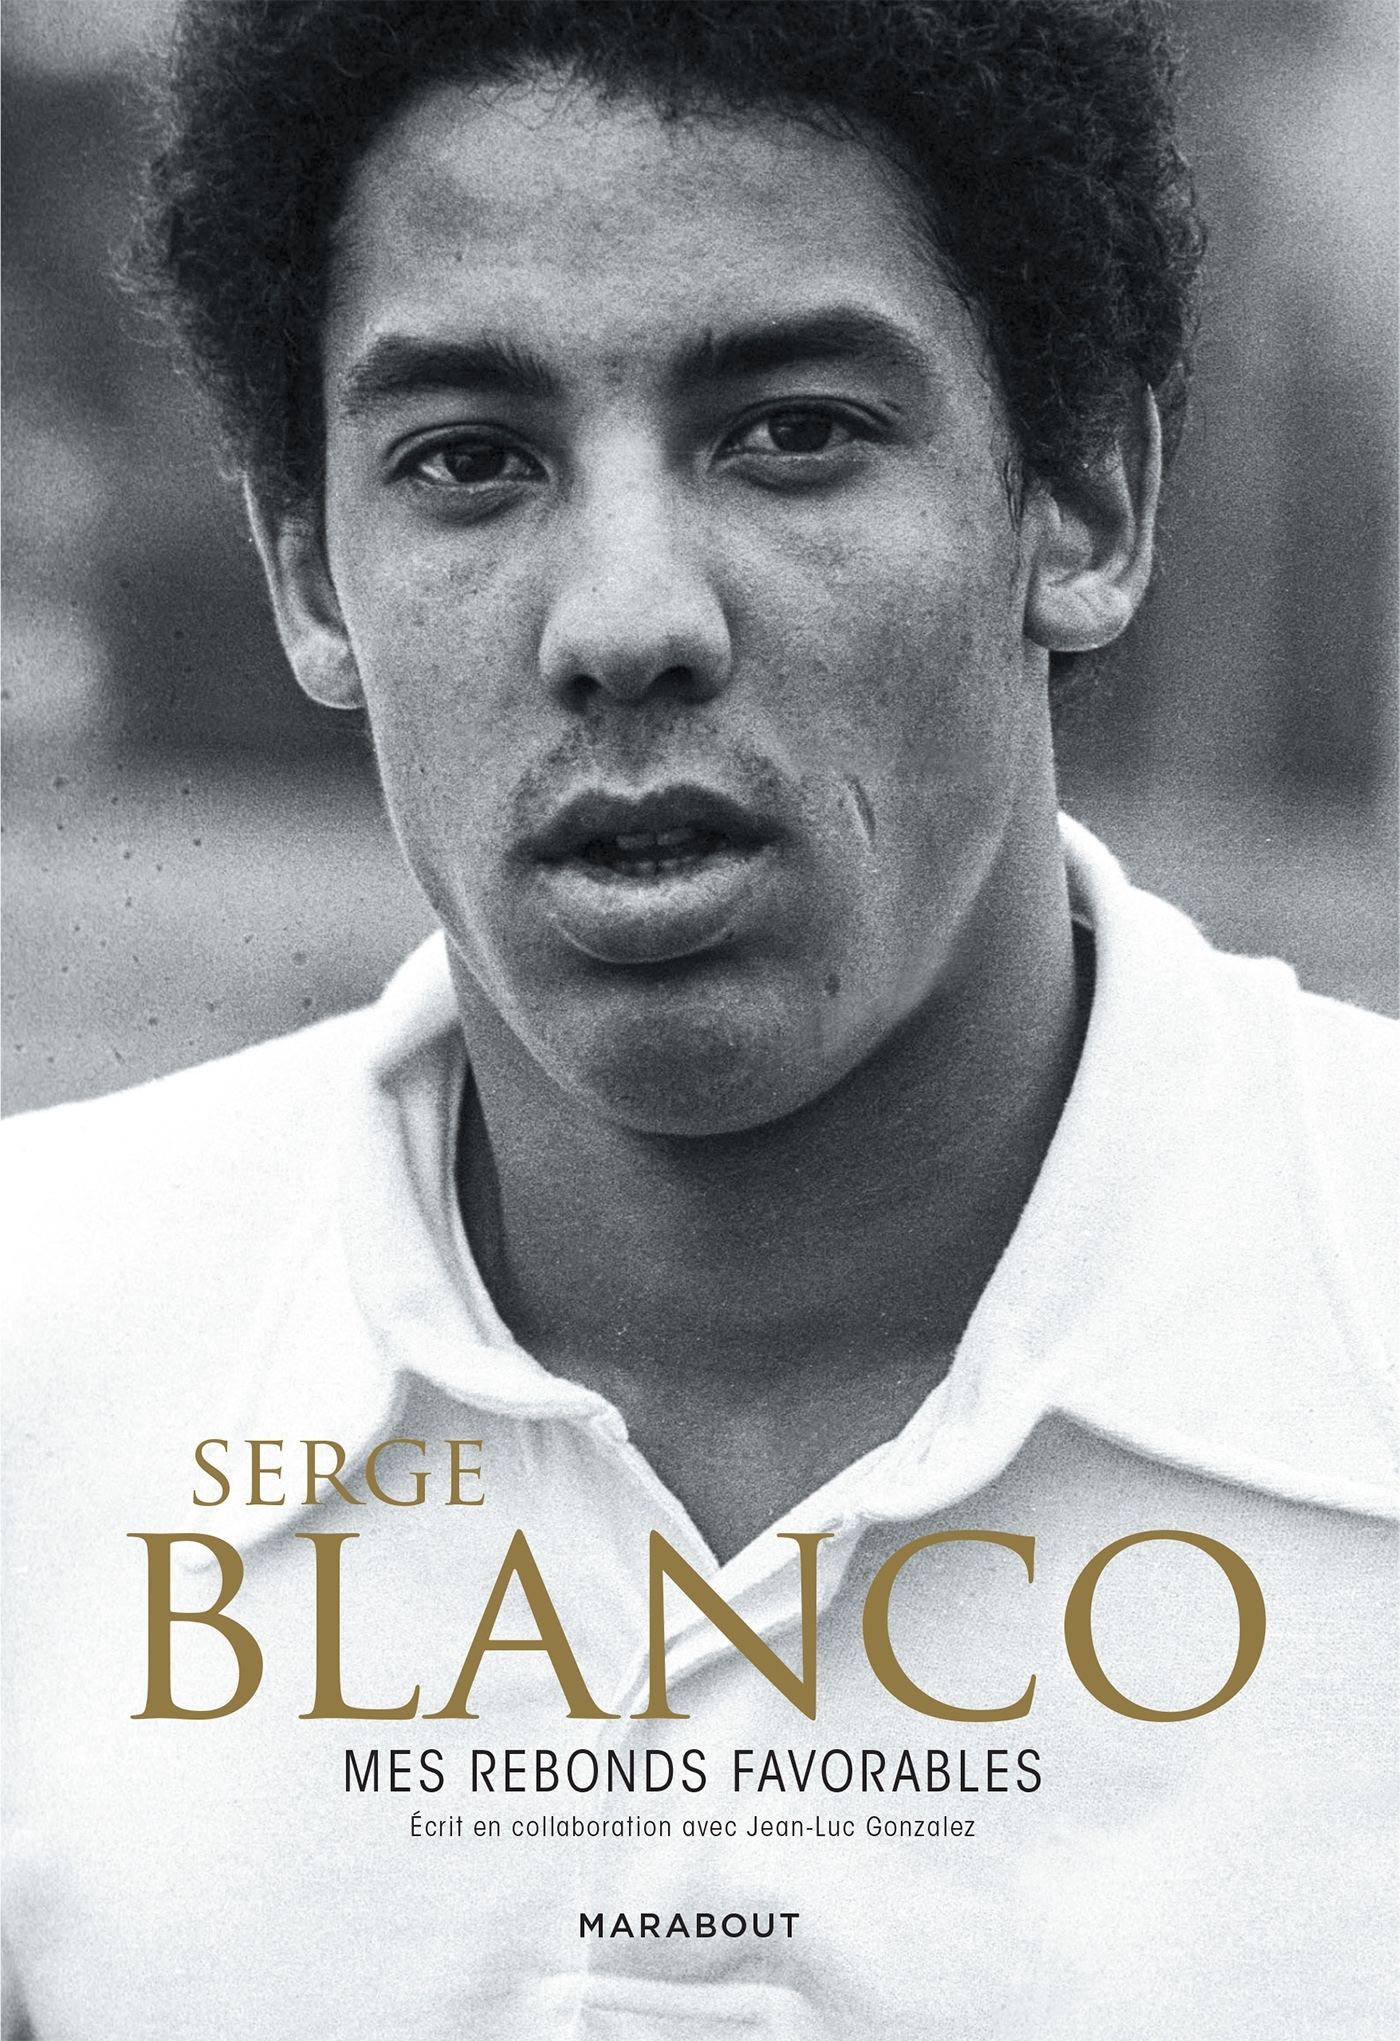 SERGE BLANCO - MES REBONDS FAVORABLES